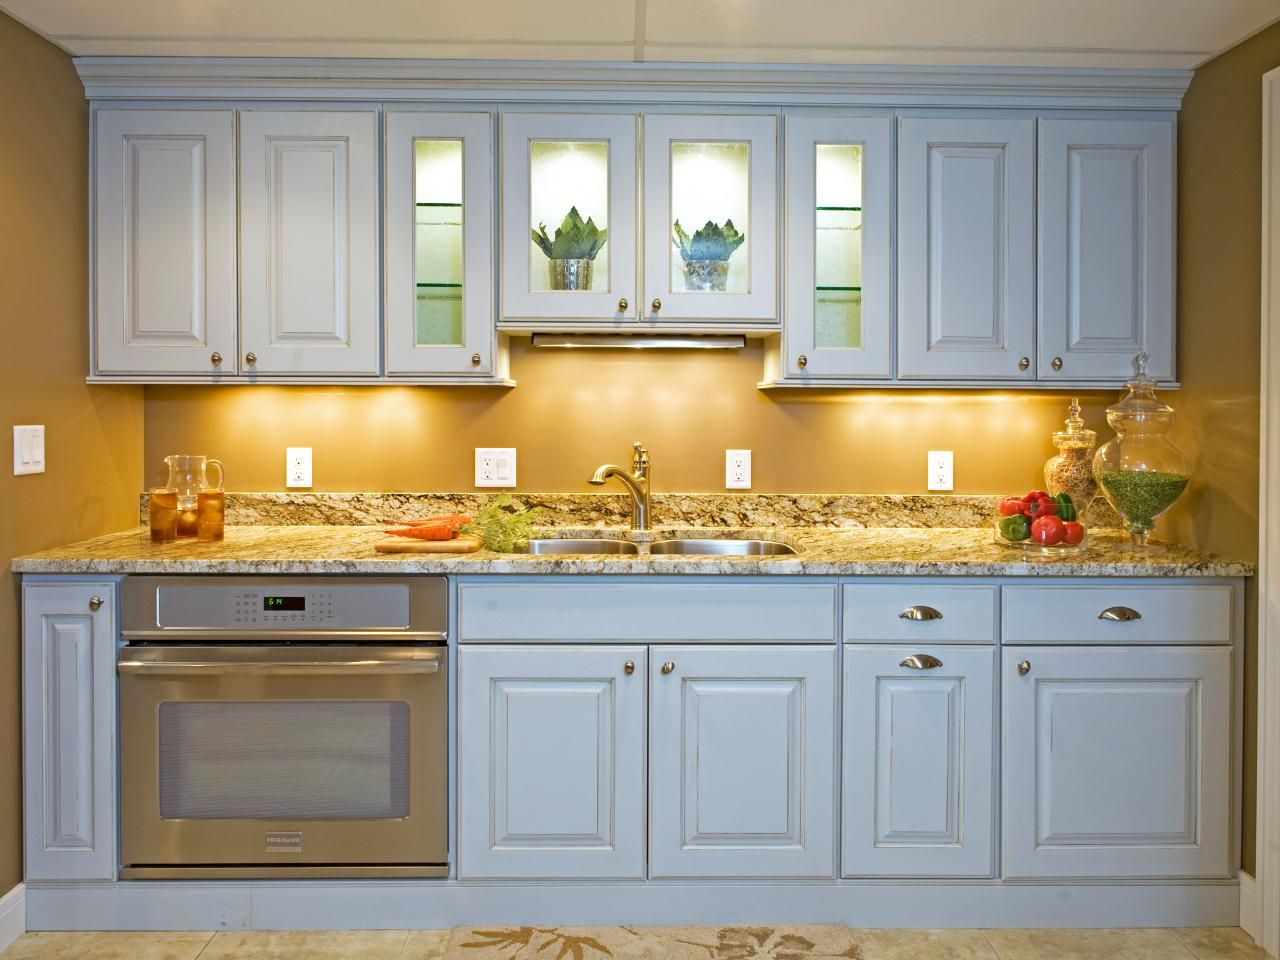 Shaker Kitchen Cabinets Pictures Ideas Tips From Hgtv: Ideas For Refacing Kitchen Cabinets: HGTV Pictures & Tips